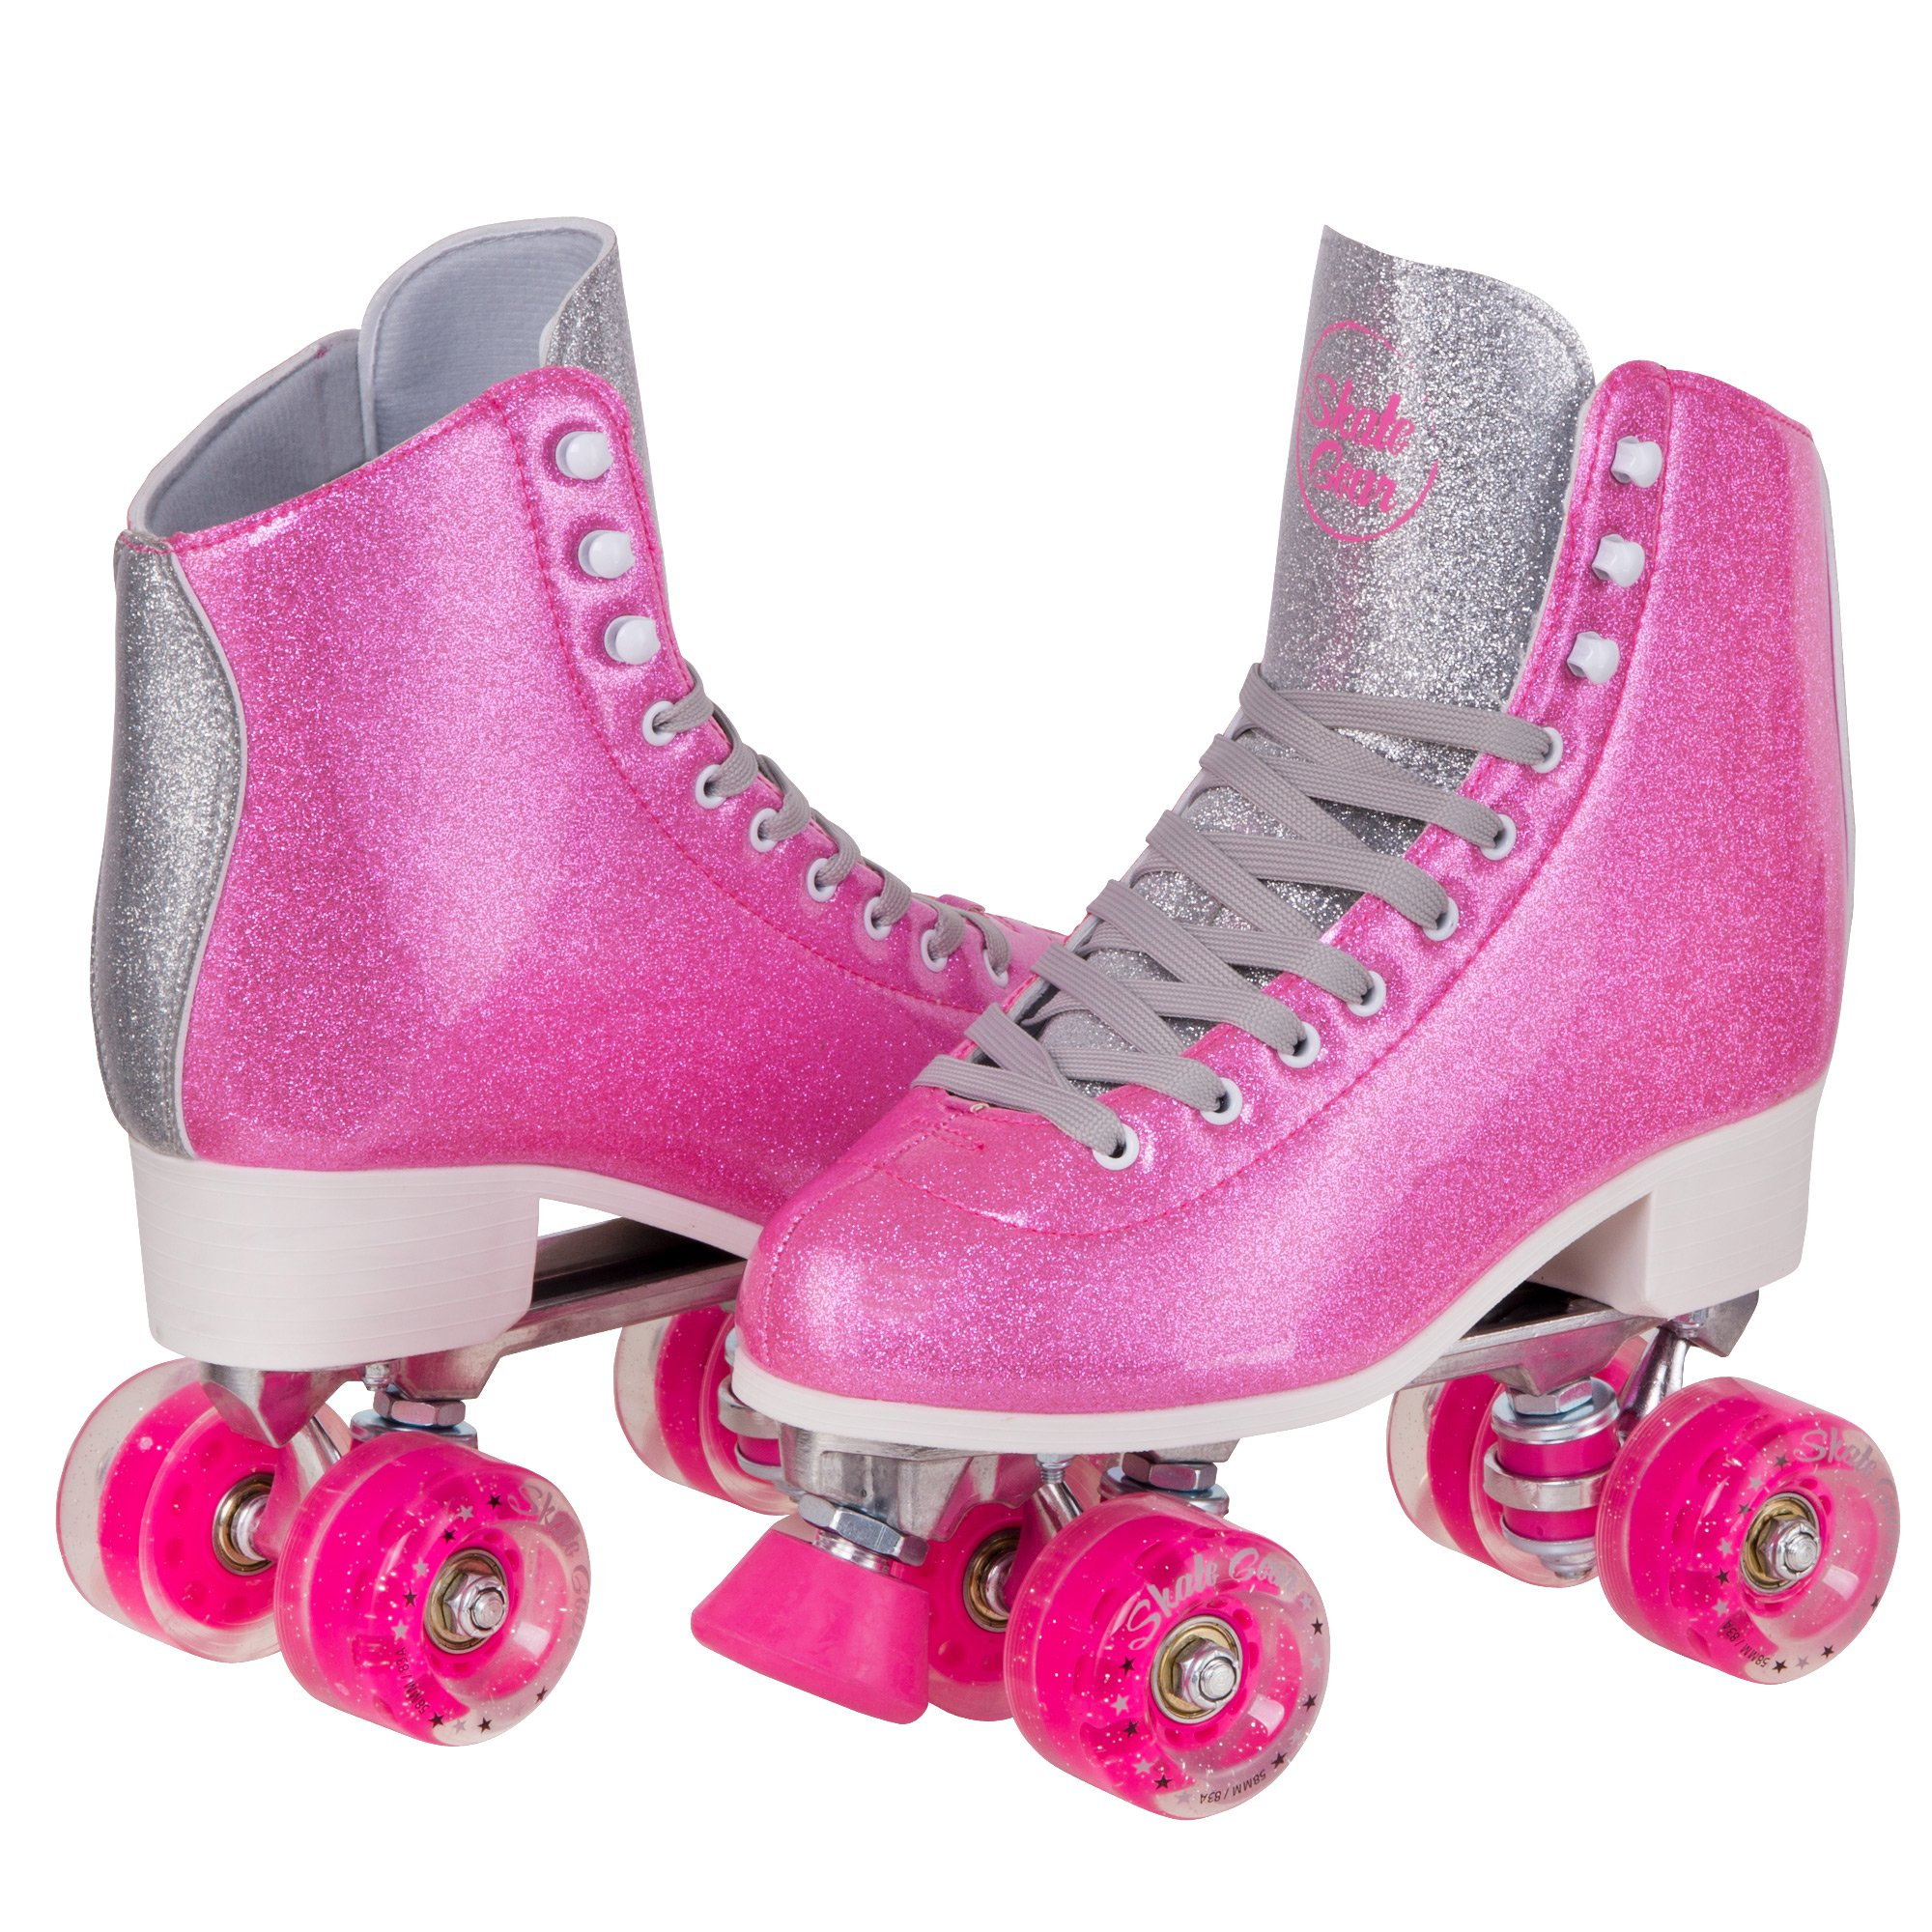 Cal 7 Sparkly Roller Skates for Indoor & Outdoor Skating, Faux Leather Quad Skate with Ankle Support & 83A PU Wheels for Kids & Adults (Pink, Youth 6 / Men's 6 / Women's 7) by Cal 7 (Image #1)